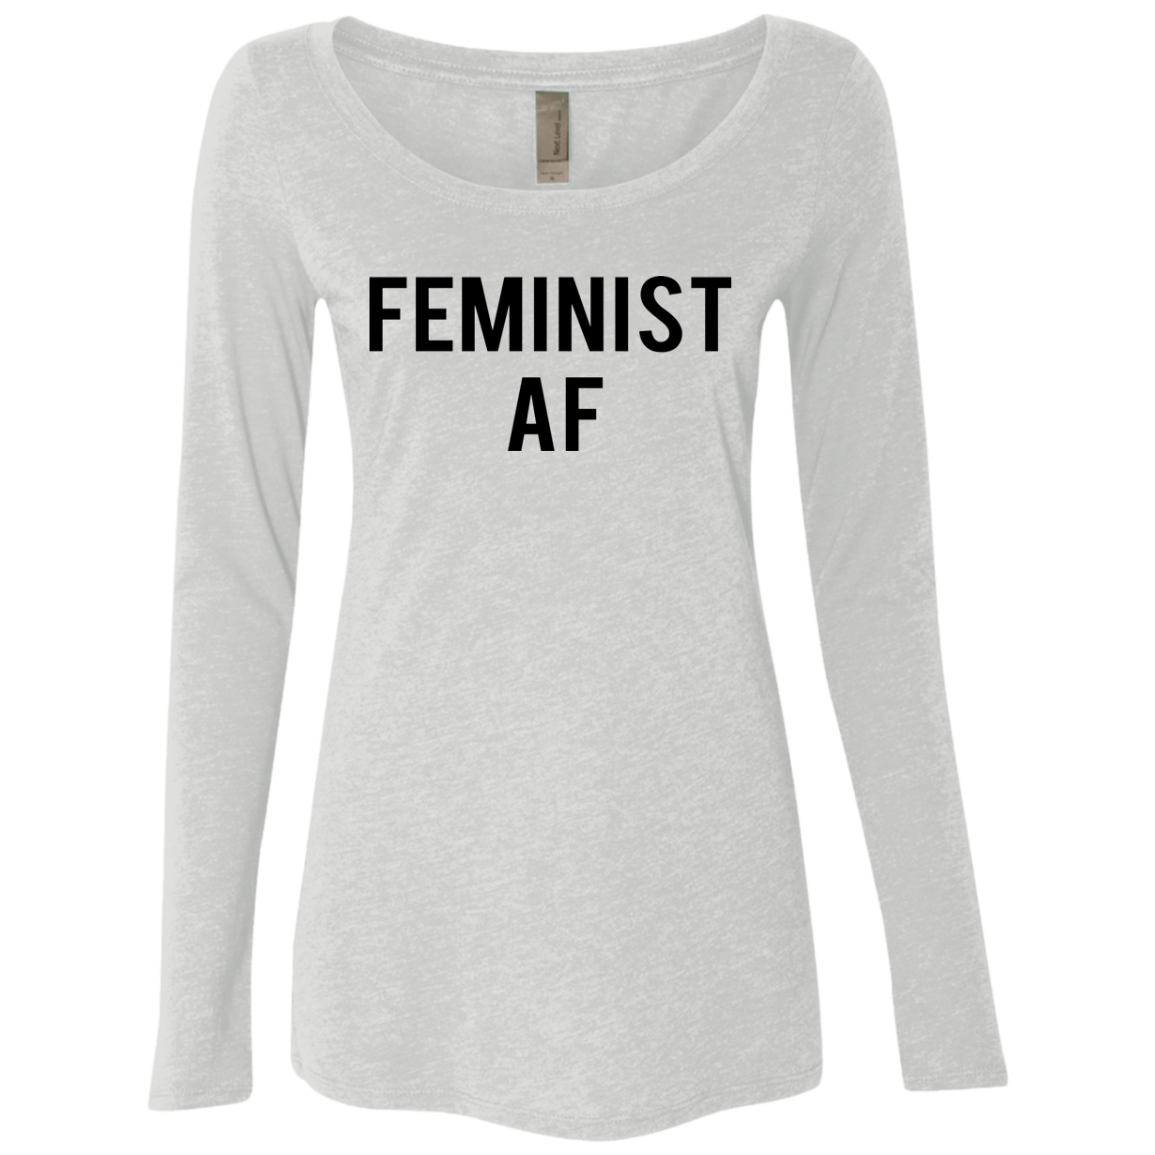 Feminist Af Women's Long Sleeve Tee